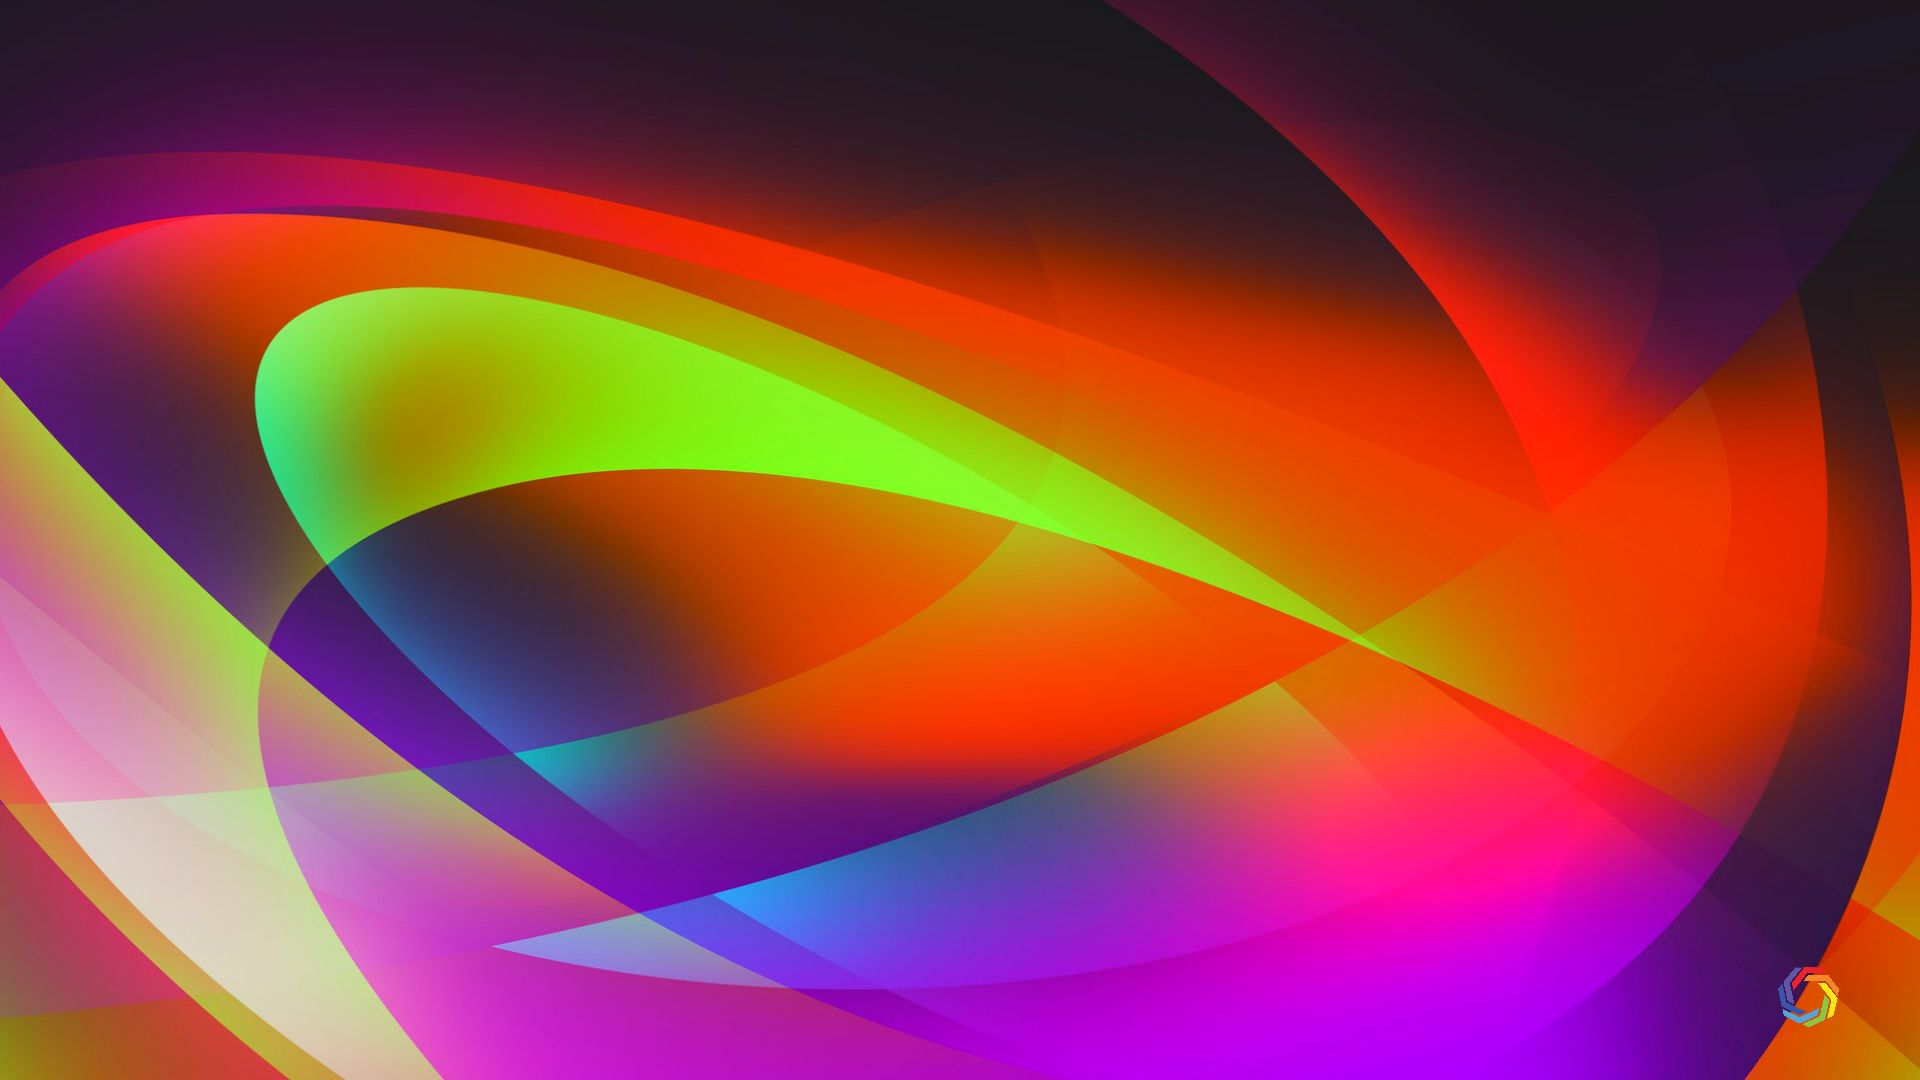 Abstract Wallpaper 4k Ultra Hd Download Abstract Wallpaper